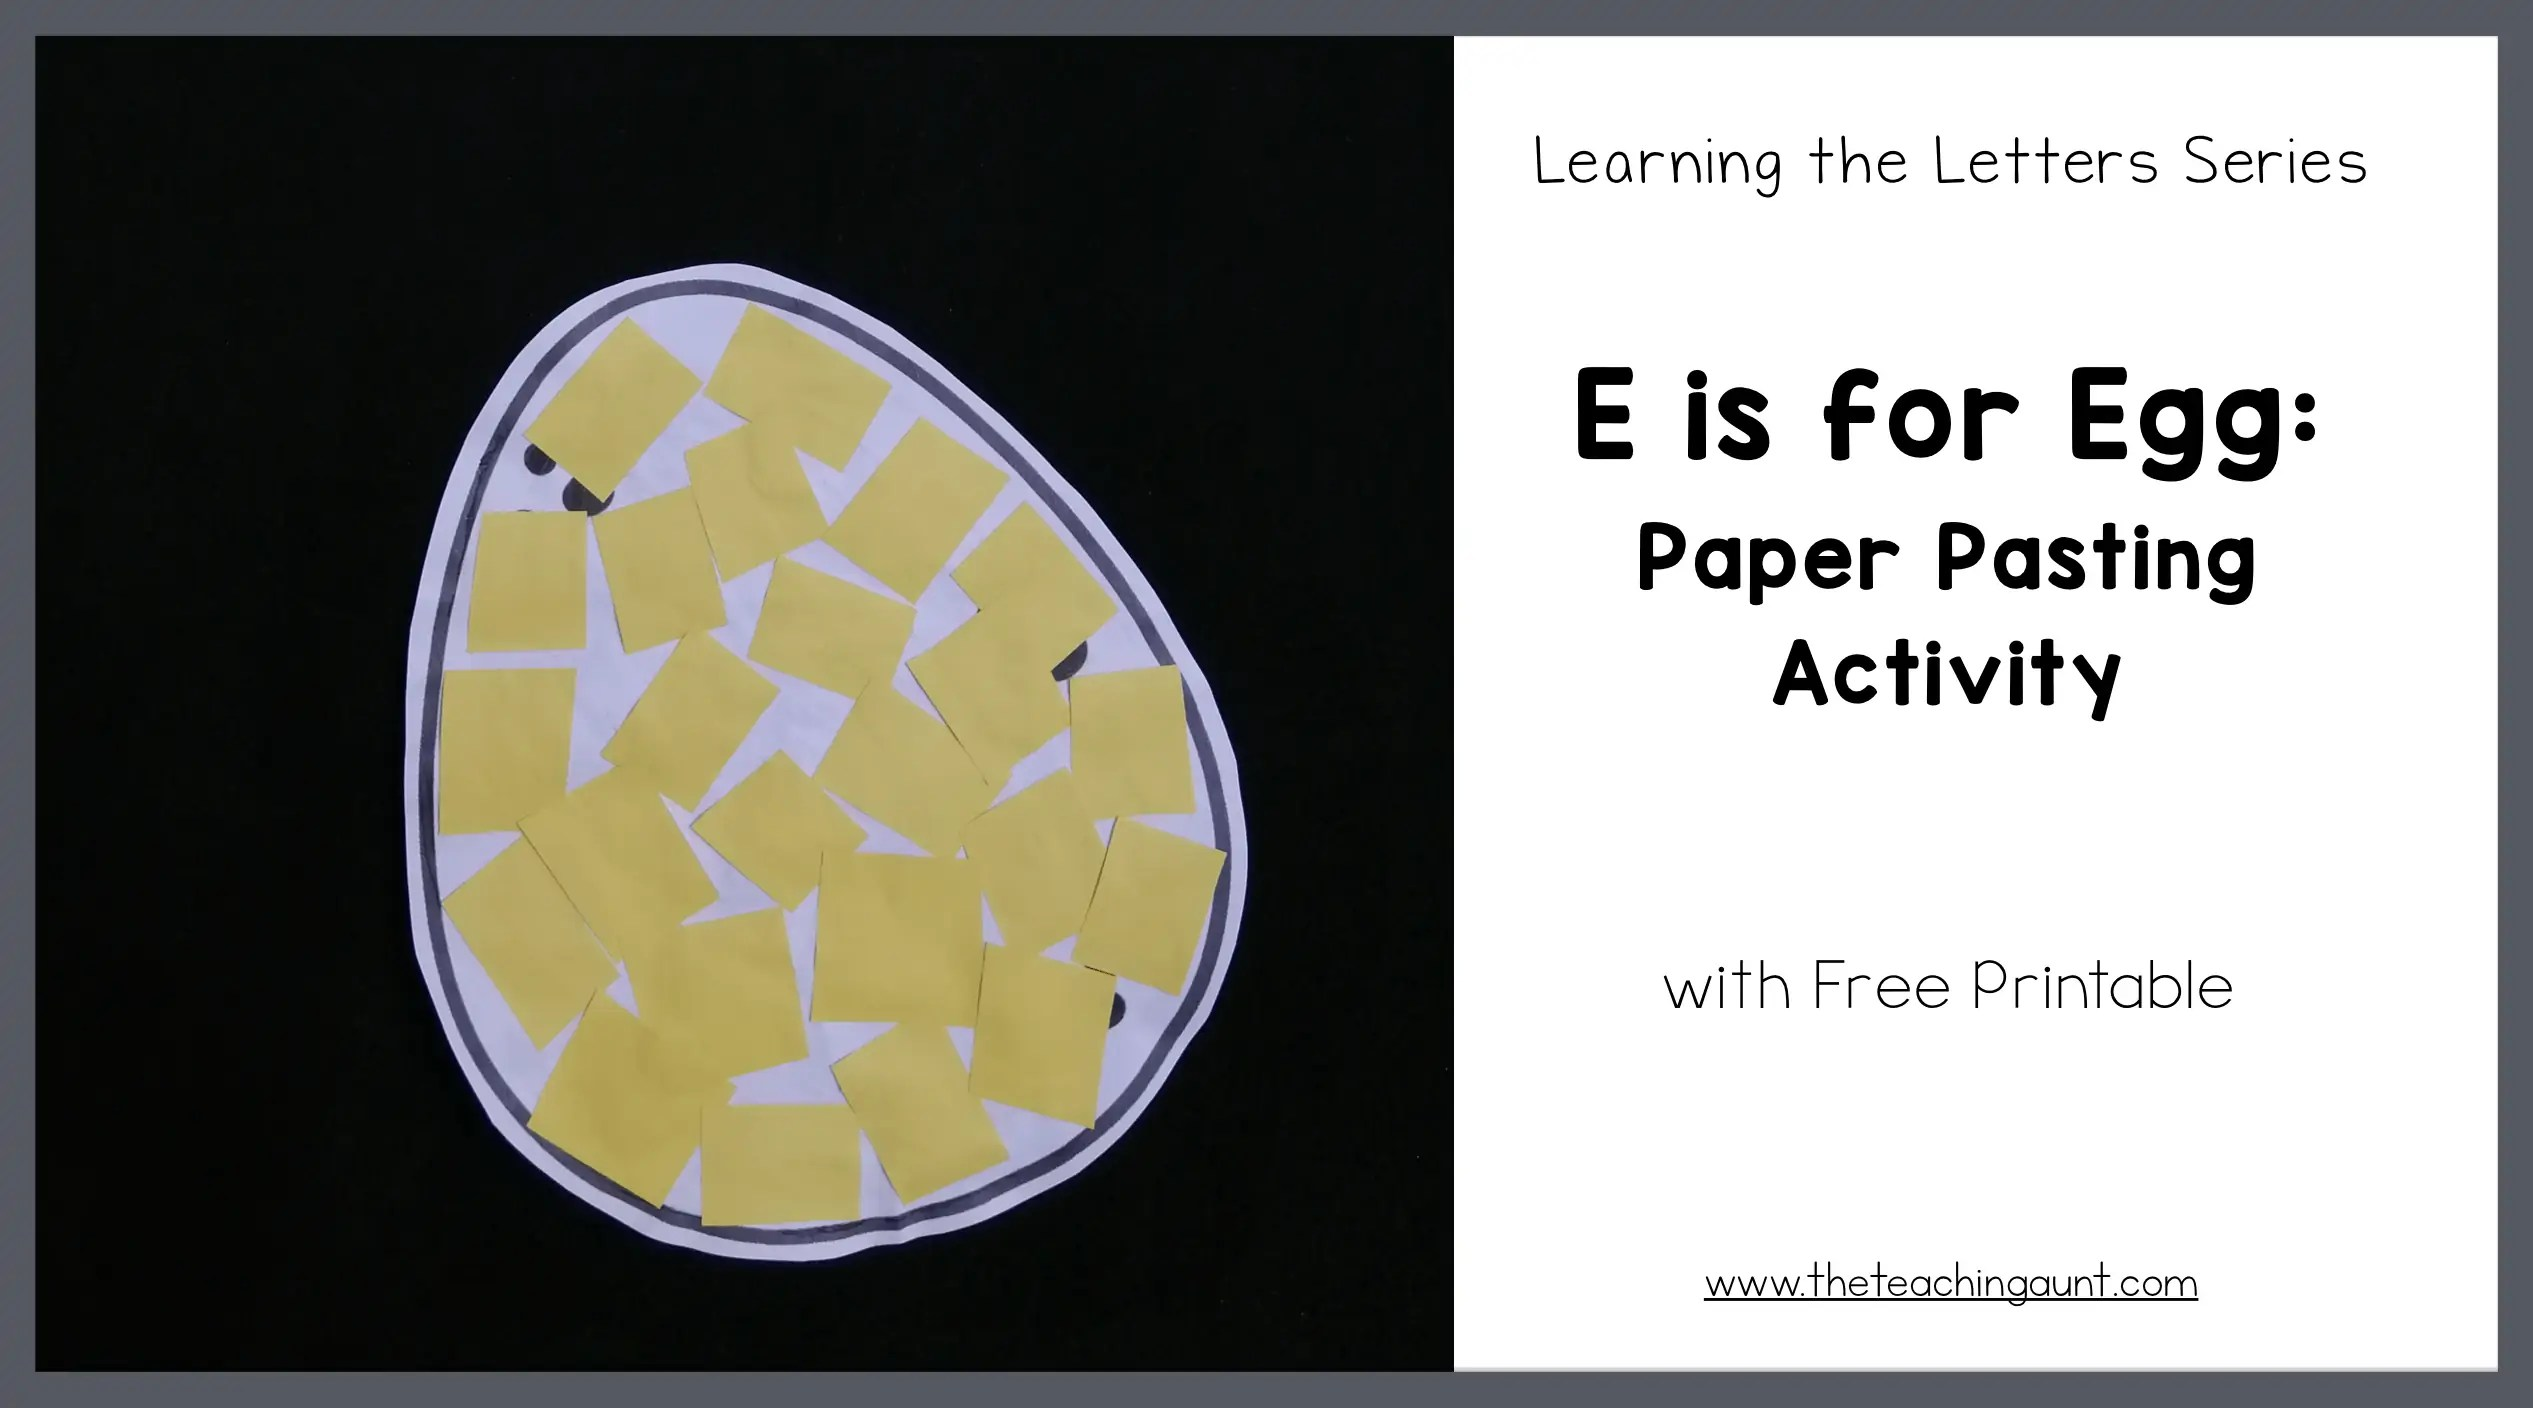 E is for Egg: Paper Pasting Activity